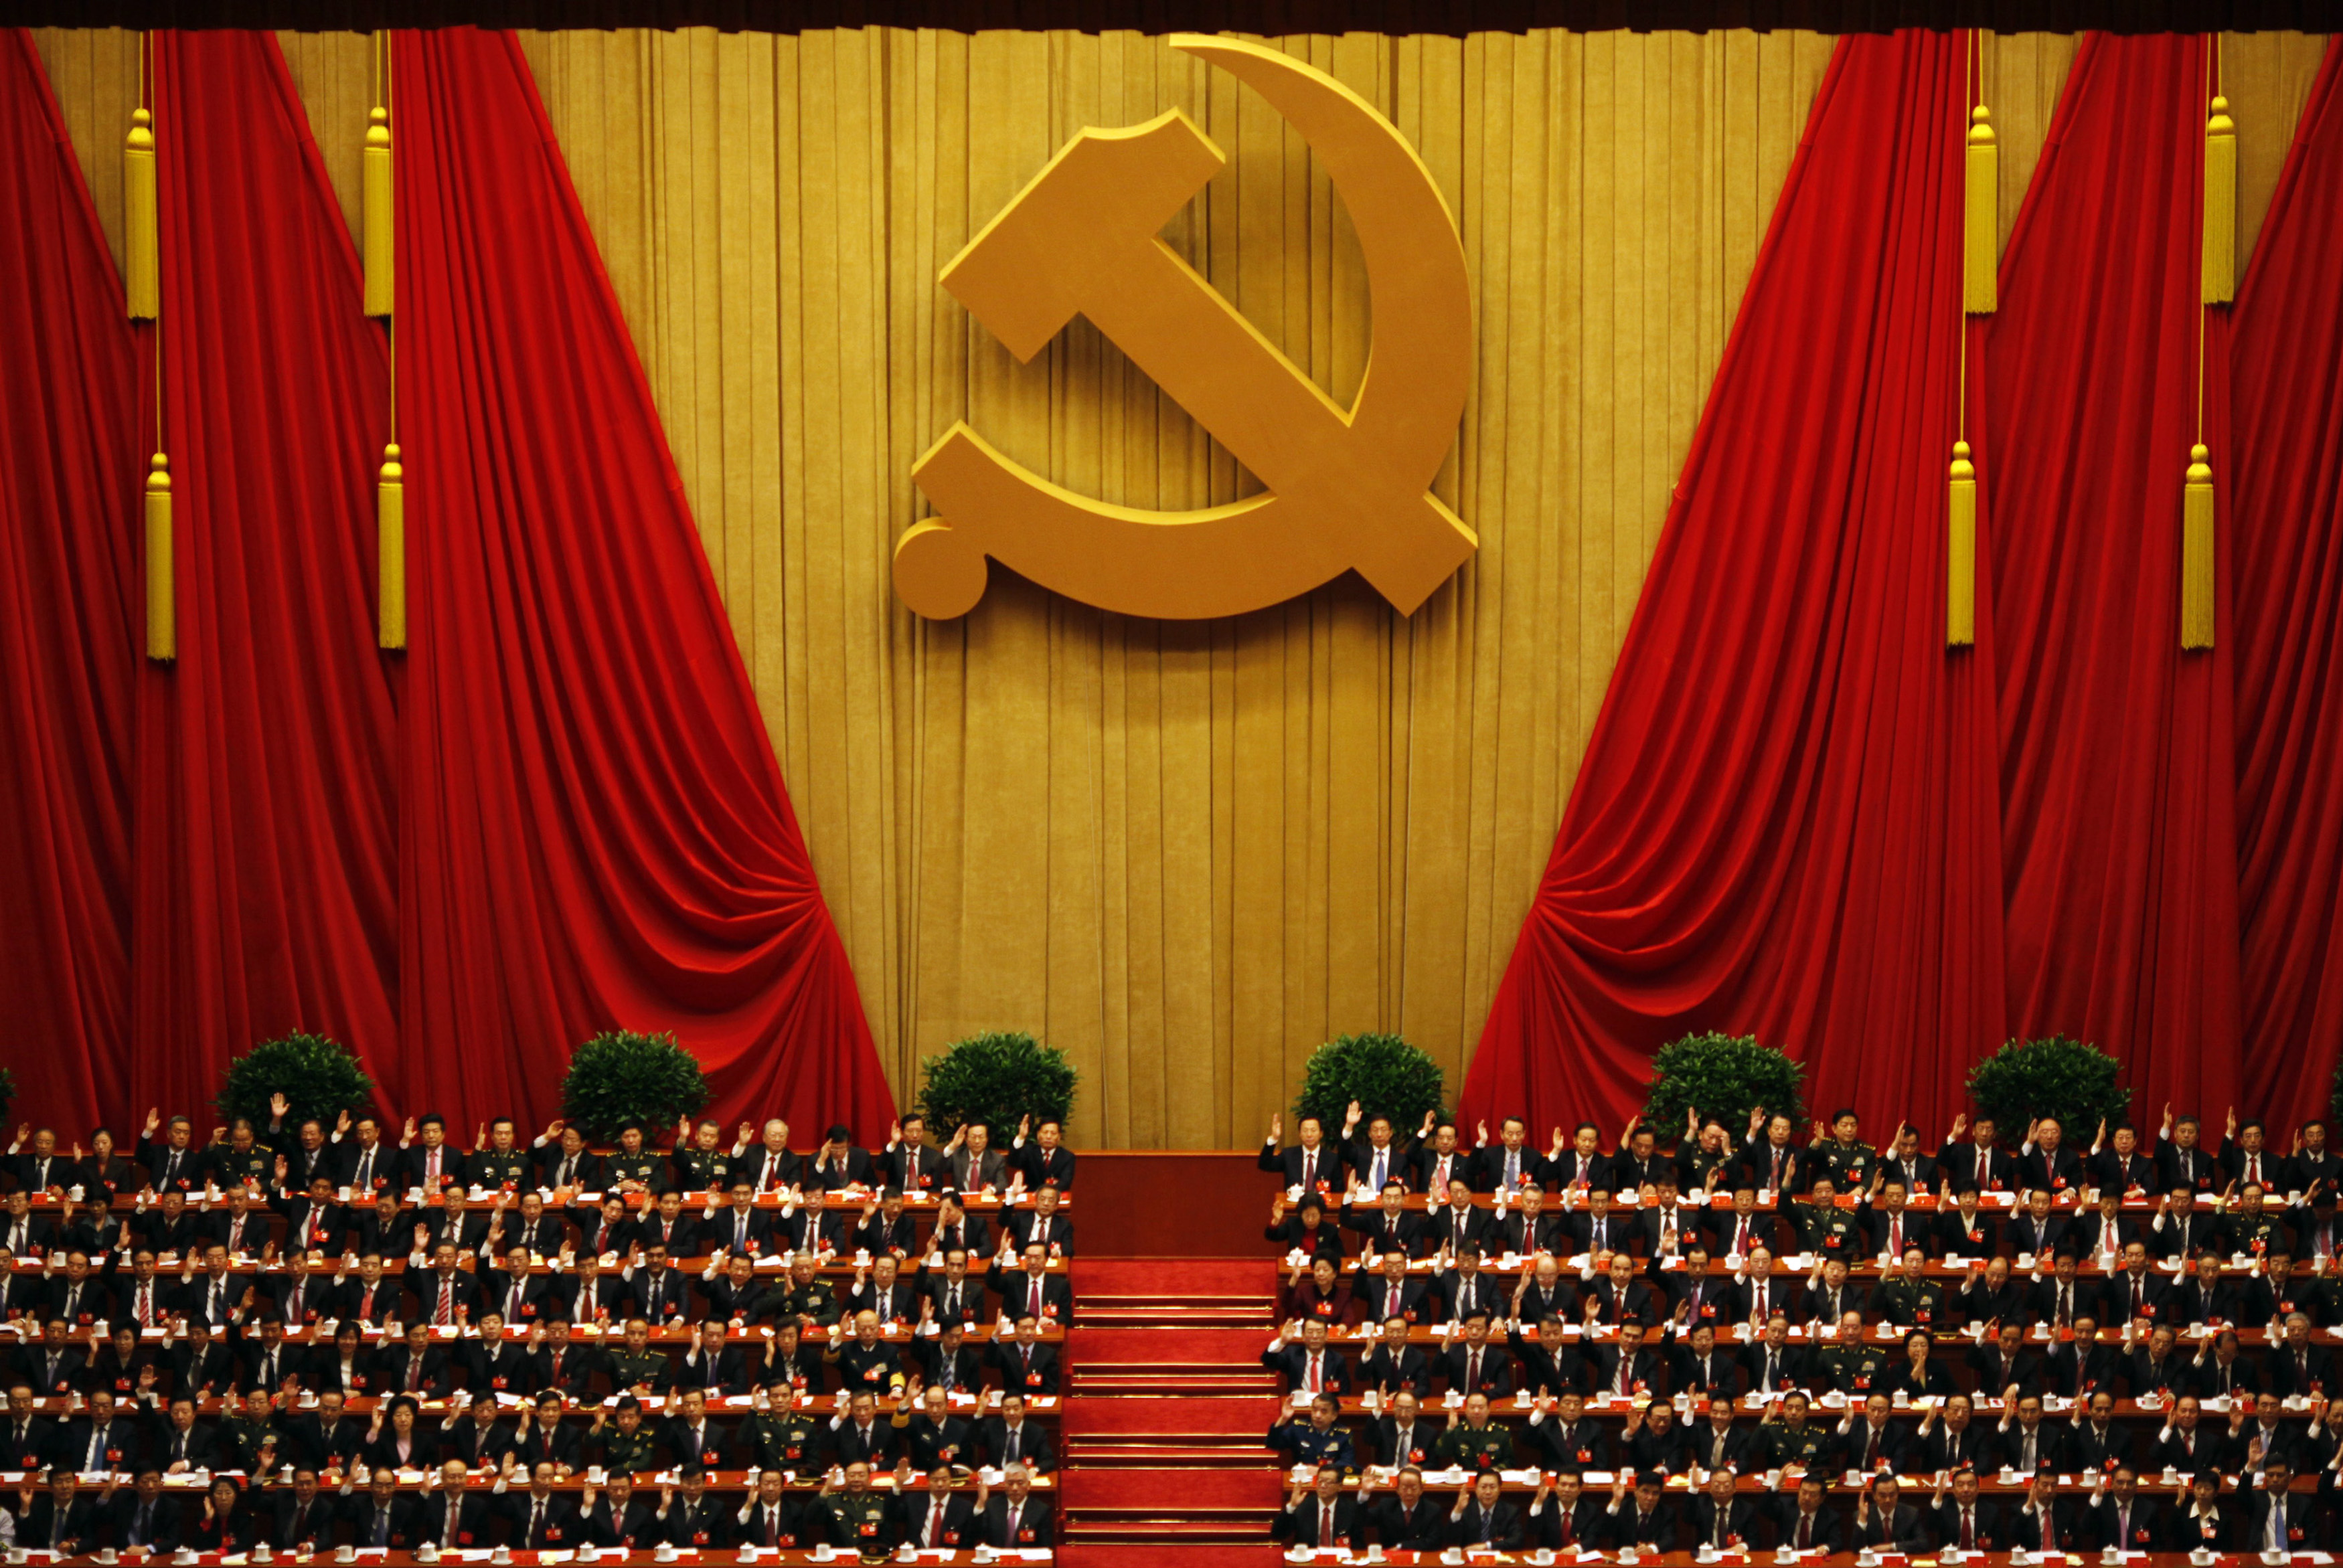 A general view shows delegates raising their hands as they take a vote at the closing session of the 18th National Congress of the Communist Party of China at the Great Hall of the People in Beijing on Nov. 14, 2012